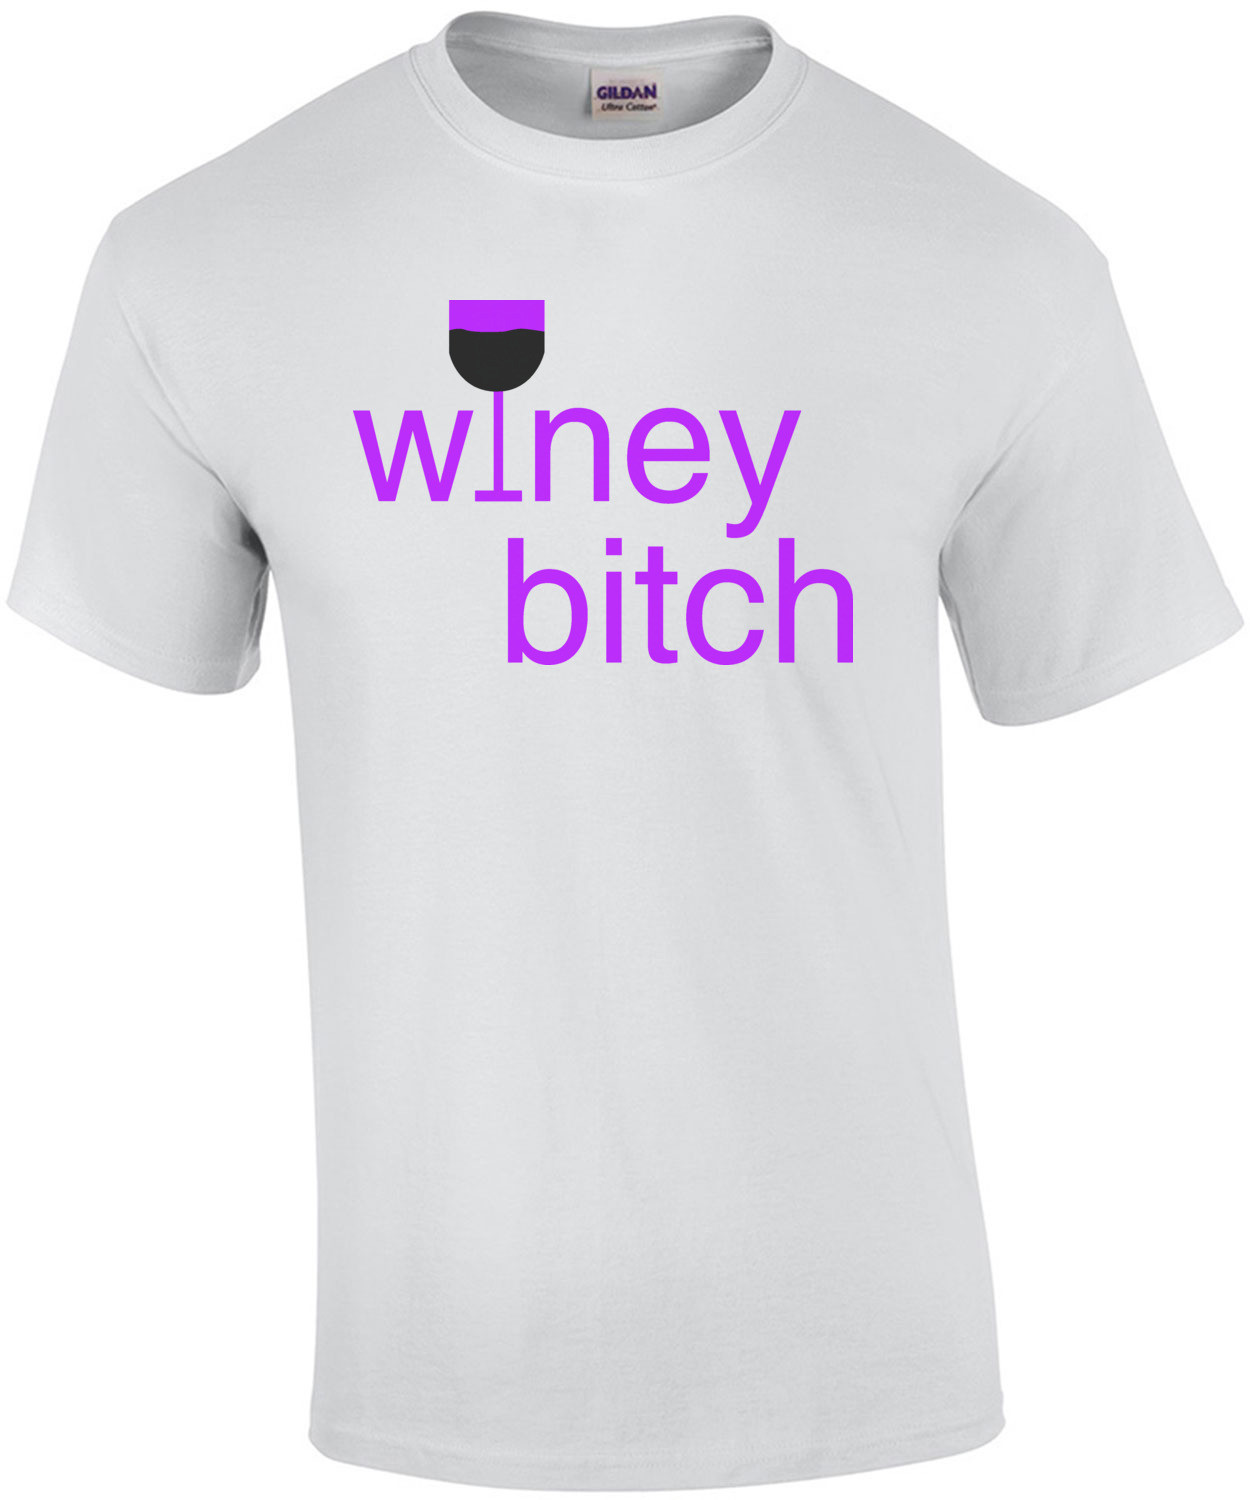 Winey Bitch - funny t-shirt